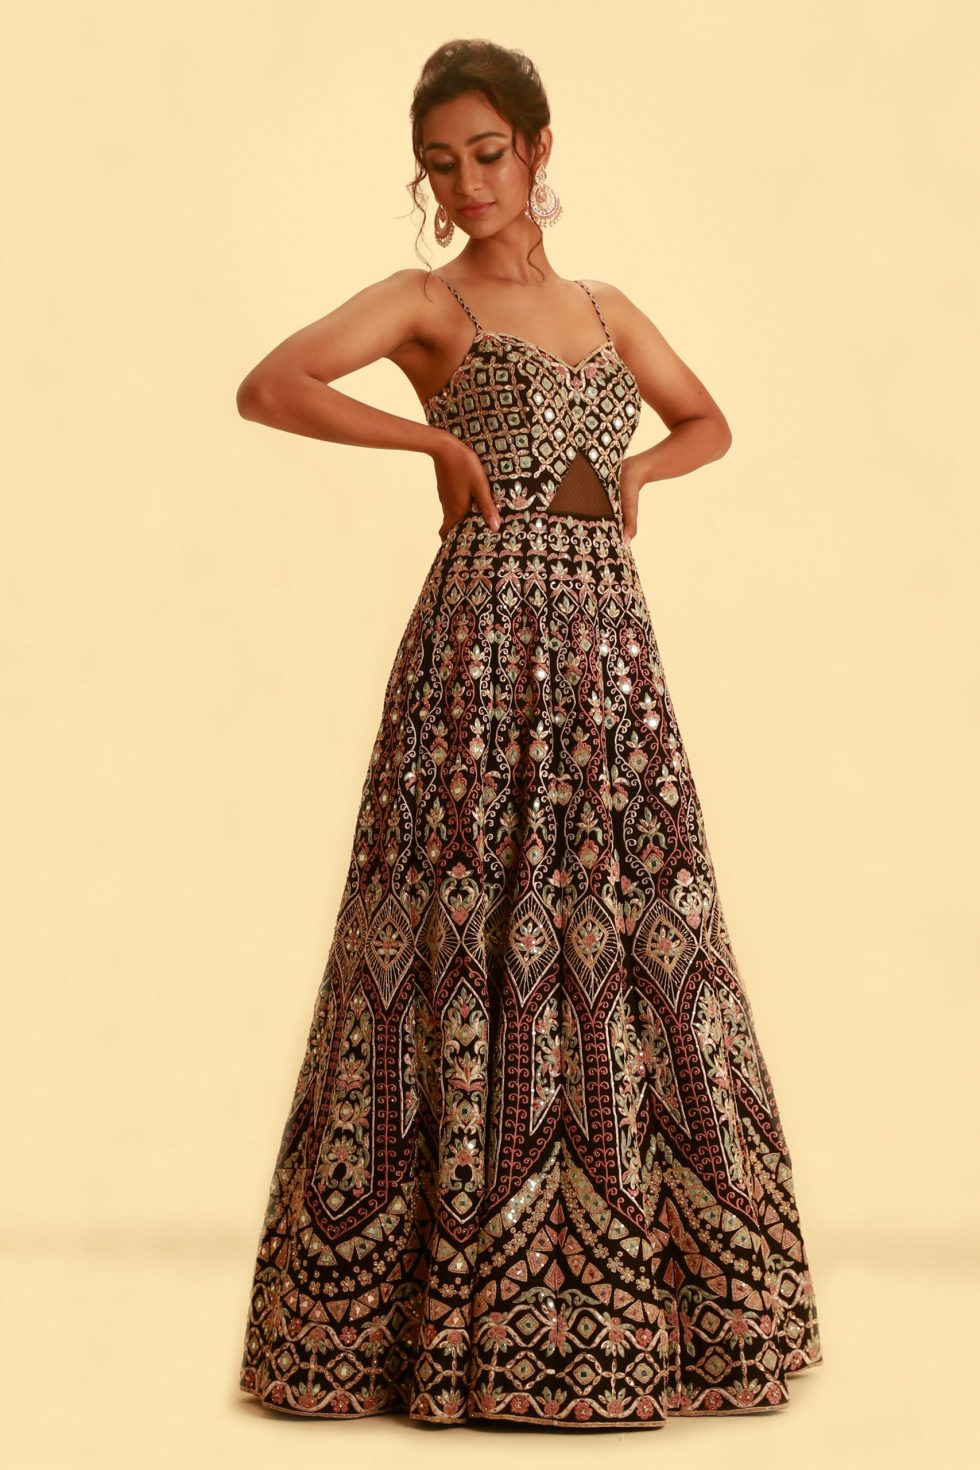 Jet black cut out gown with multi coloured embroidery and braided straps